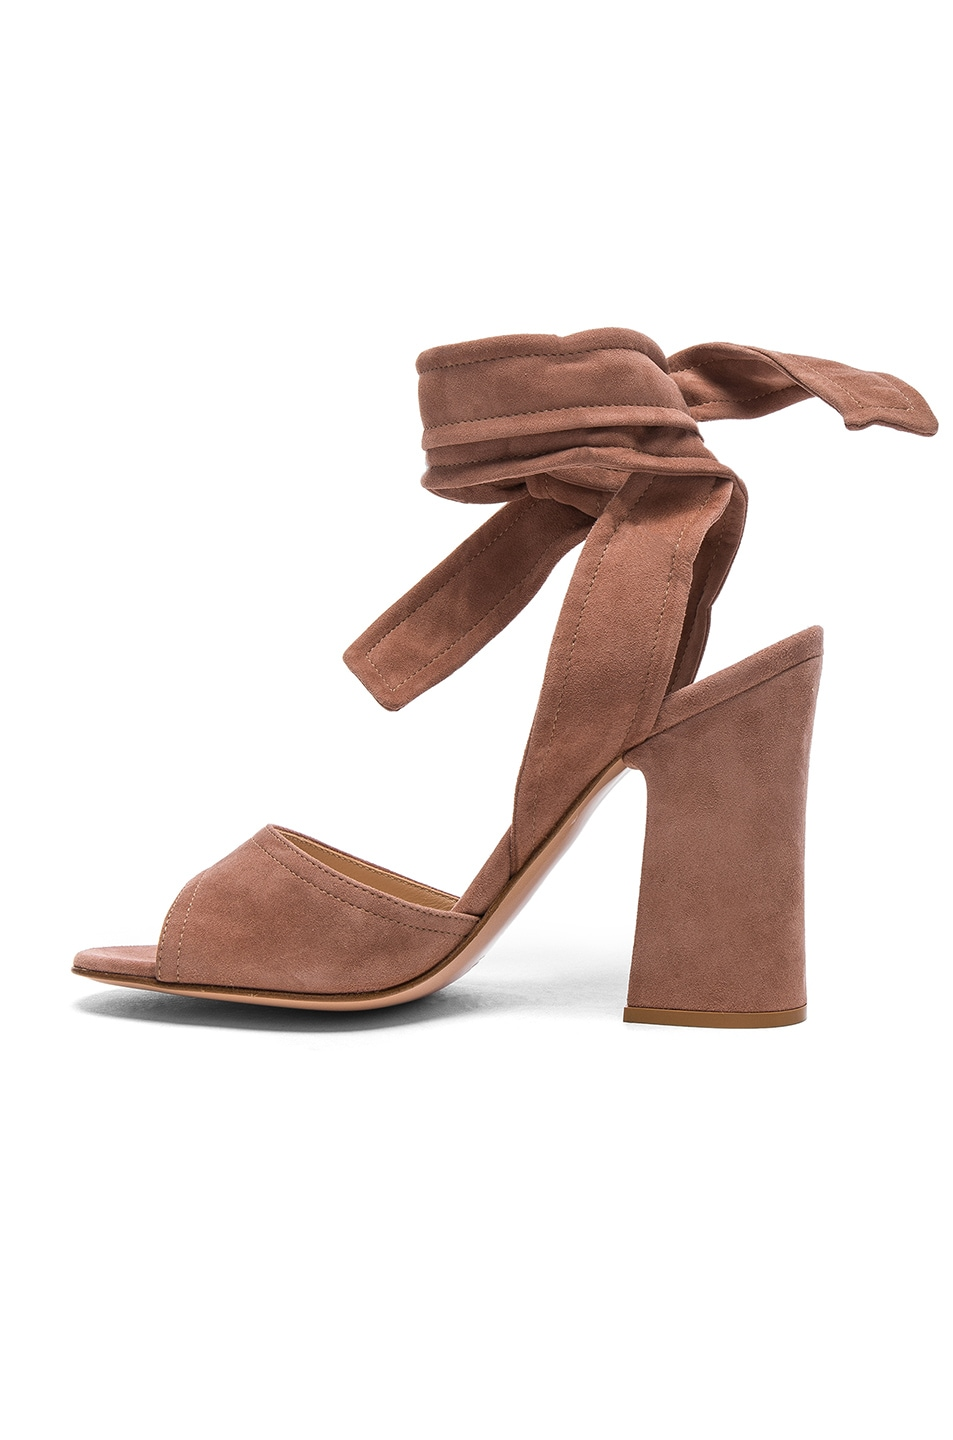 Image 5 of Gianvito Rossi Suede Ankle Tie Heels in Praline